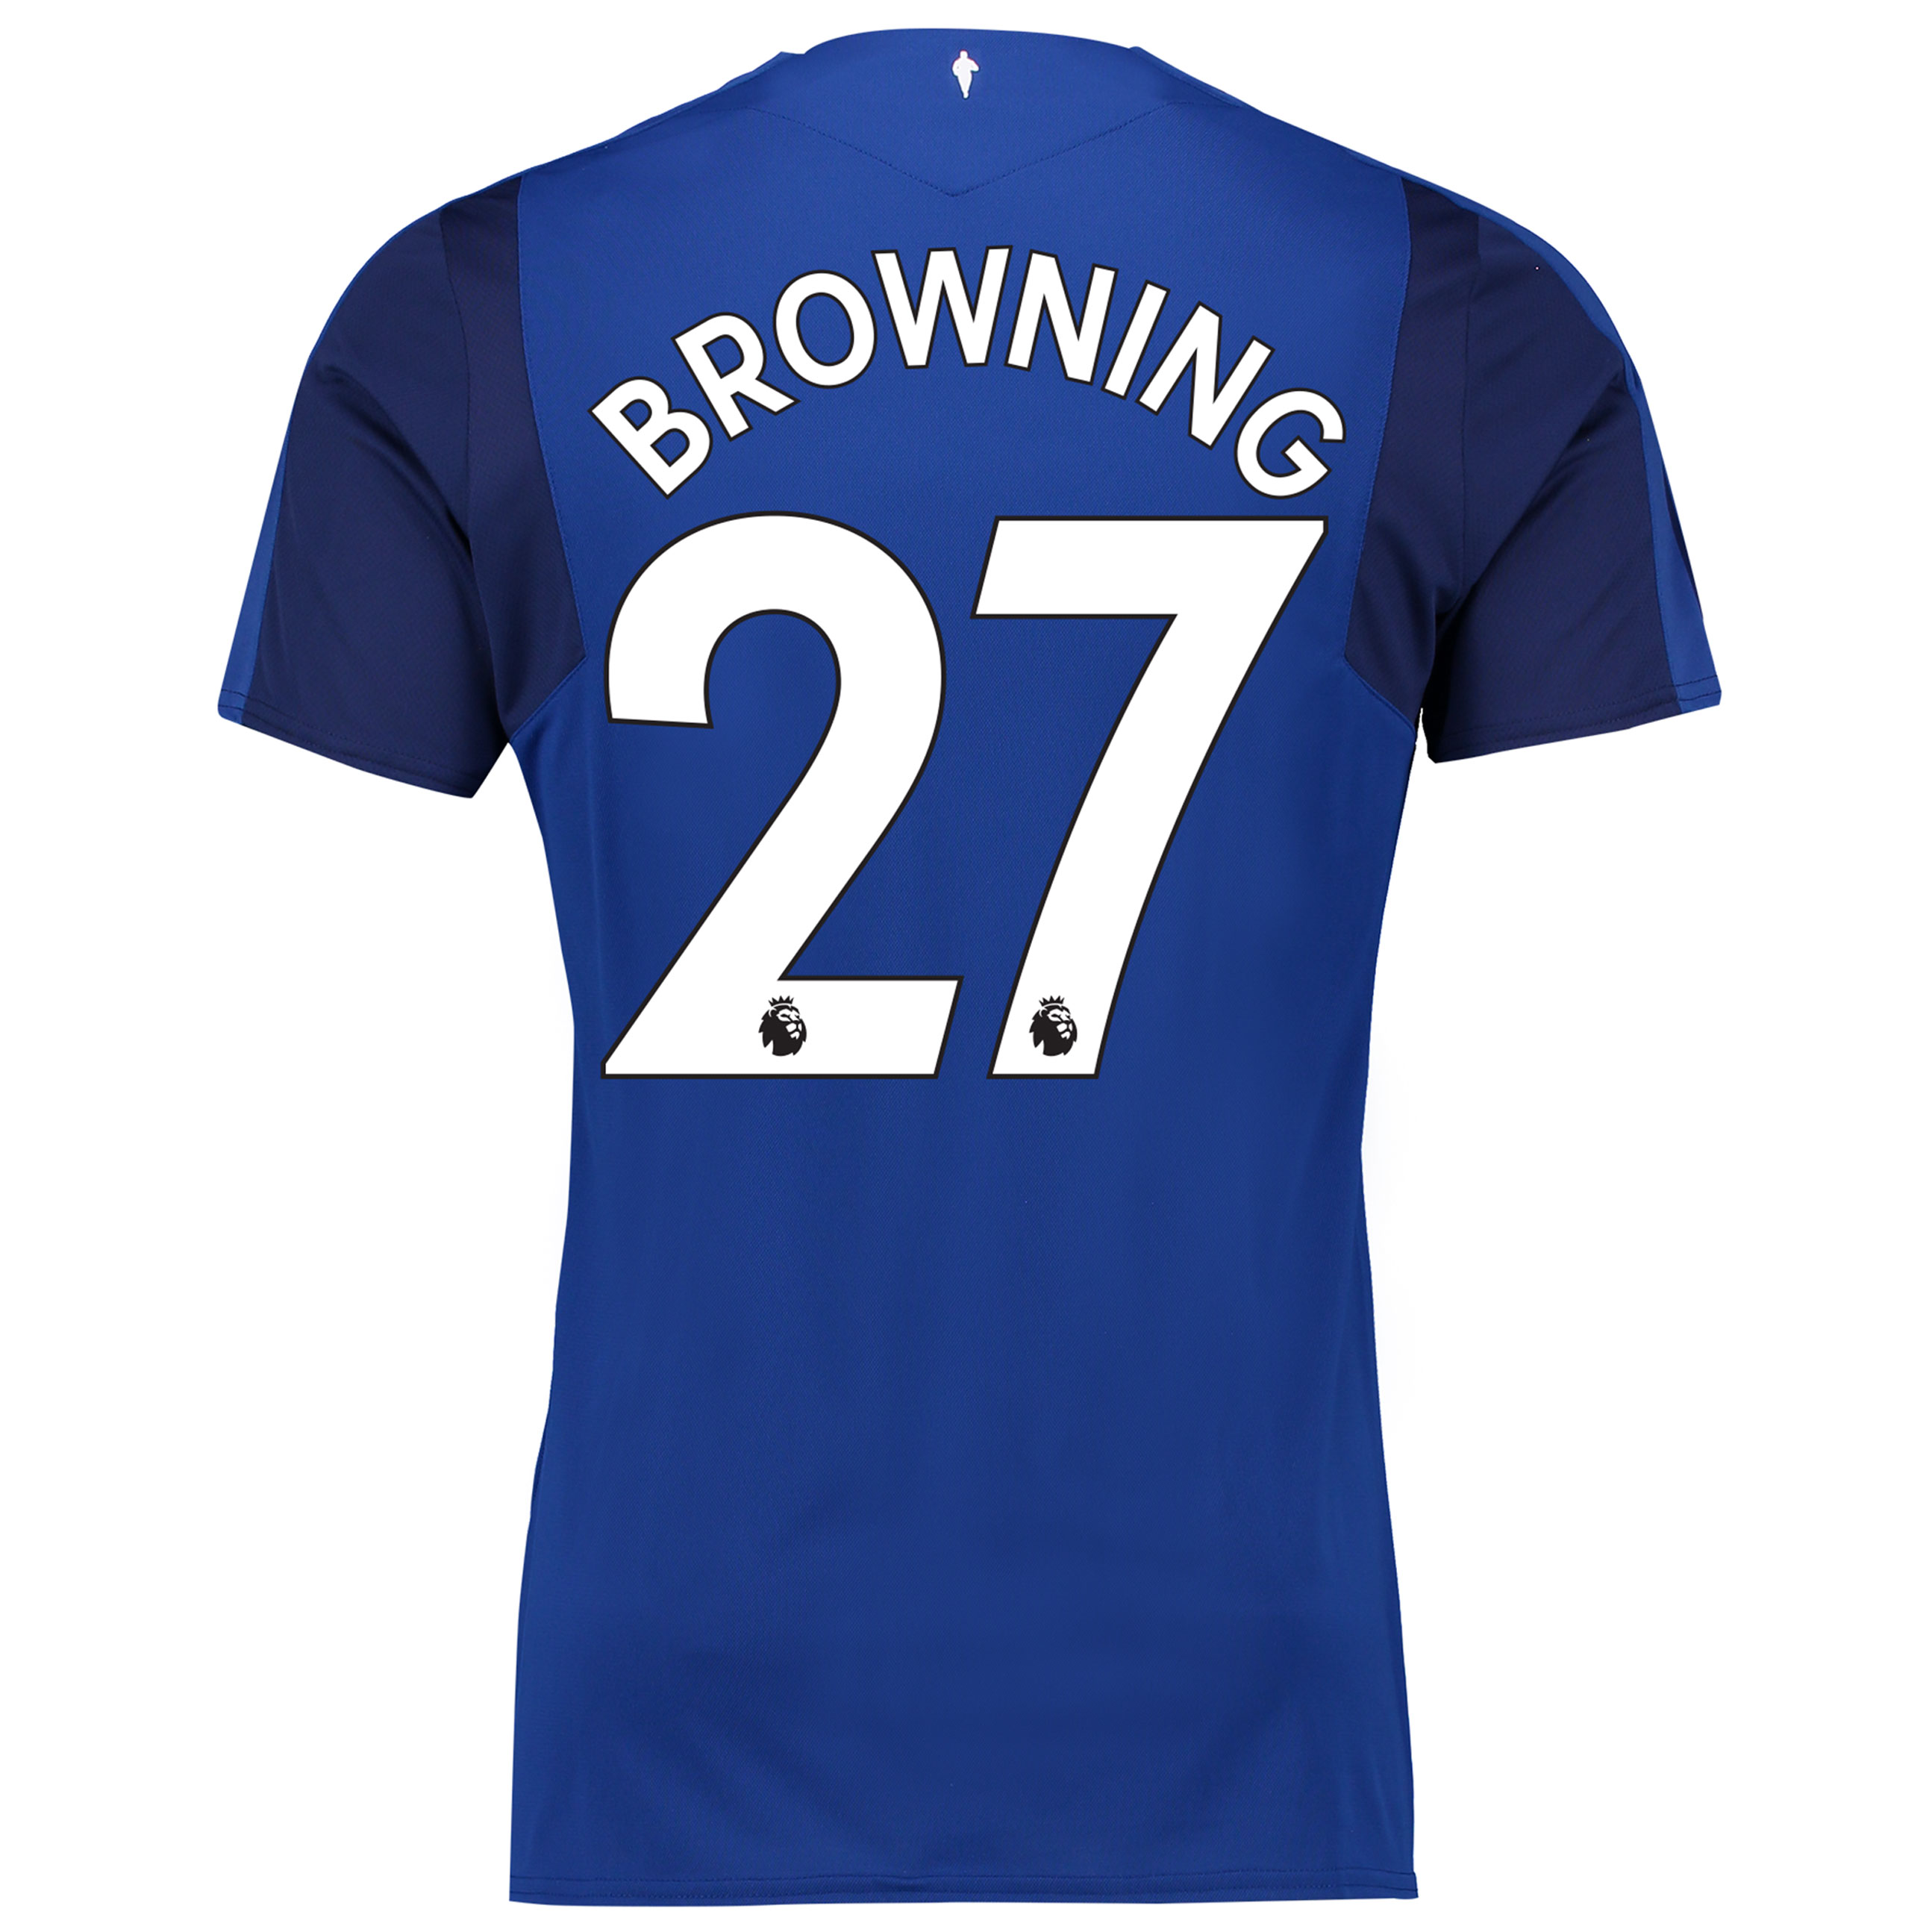 Everton Home Shirt 2017/18 with Browning 27 printing